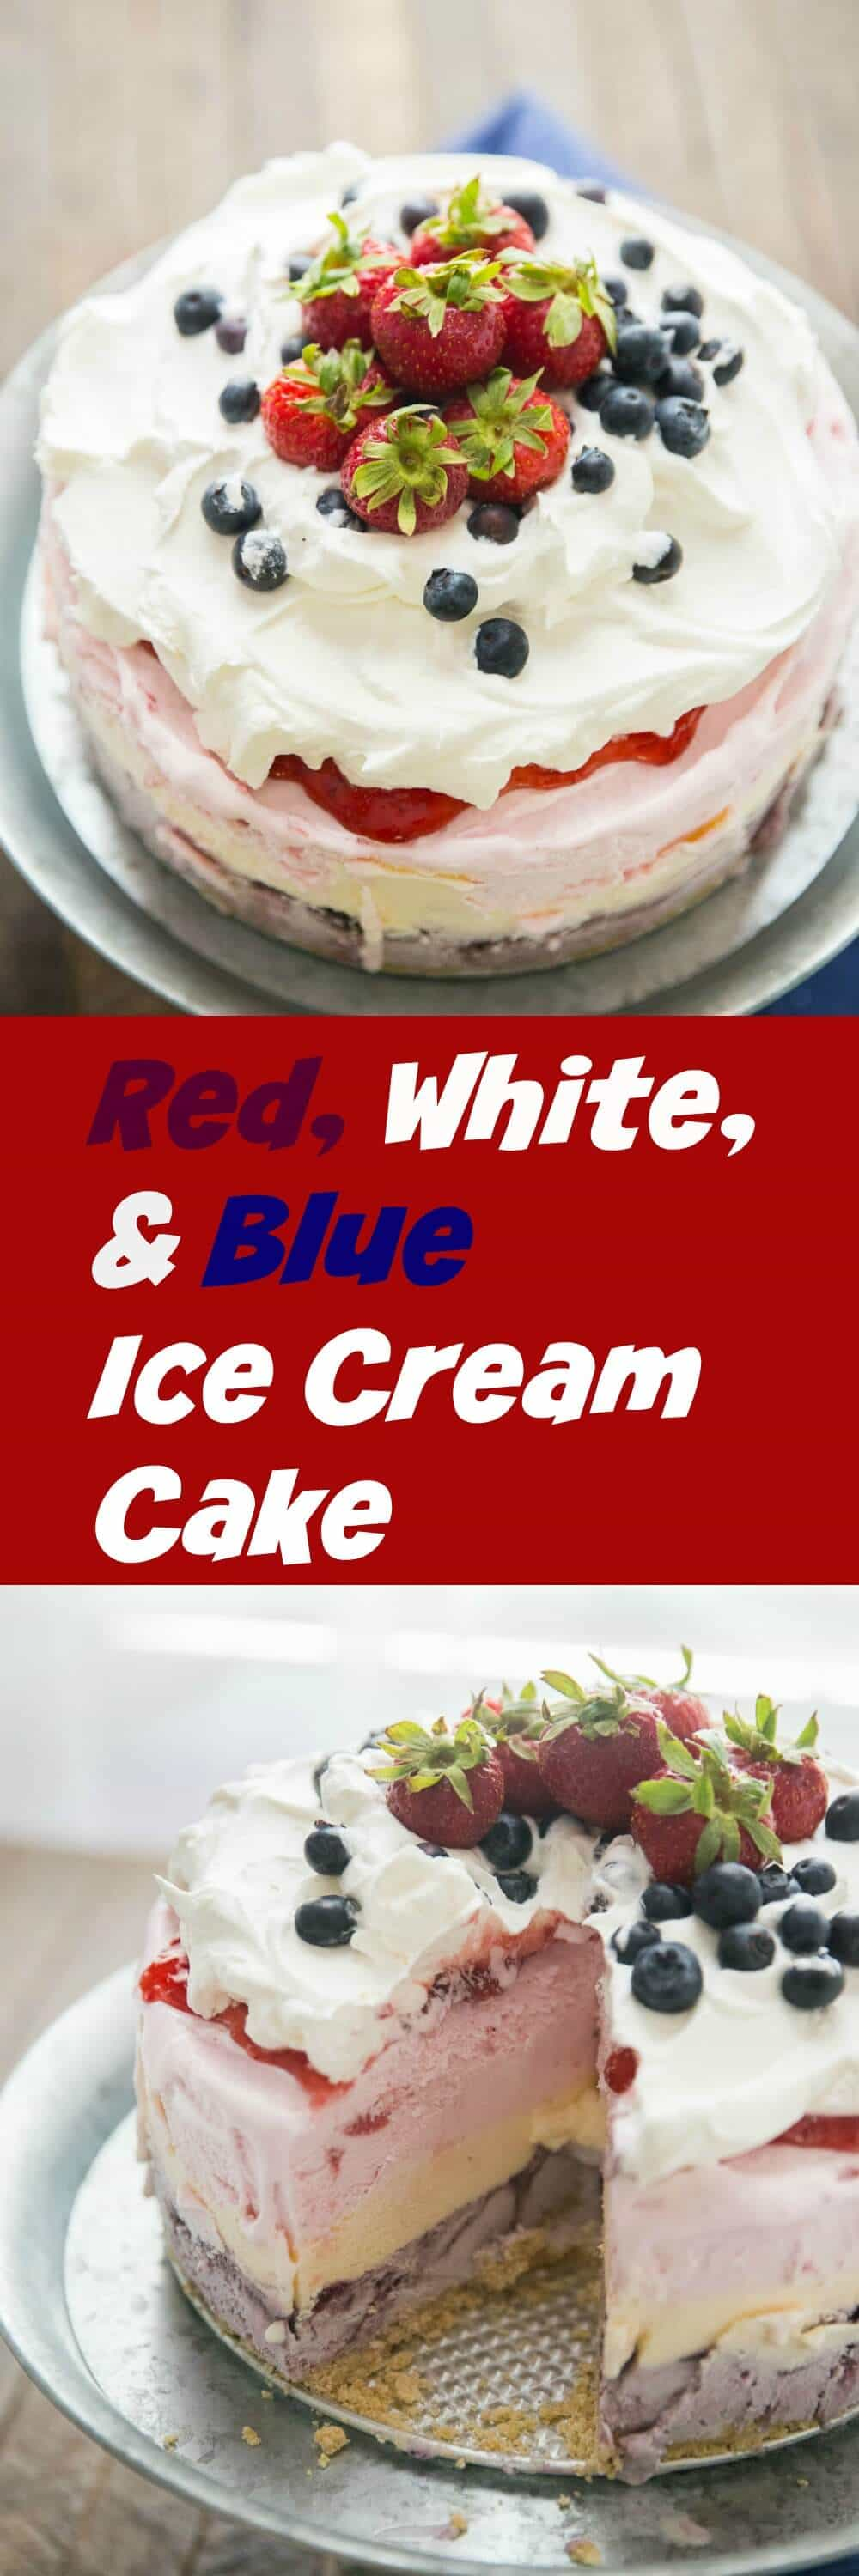 This red, white, and blue ice cream cake is a great way to start of the summer! It is perfect for summer parties, it is fun, patriotic and super simple! lemonsforlulu.com